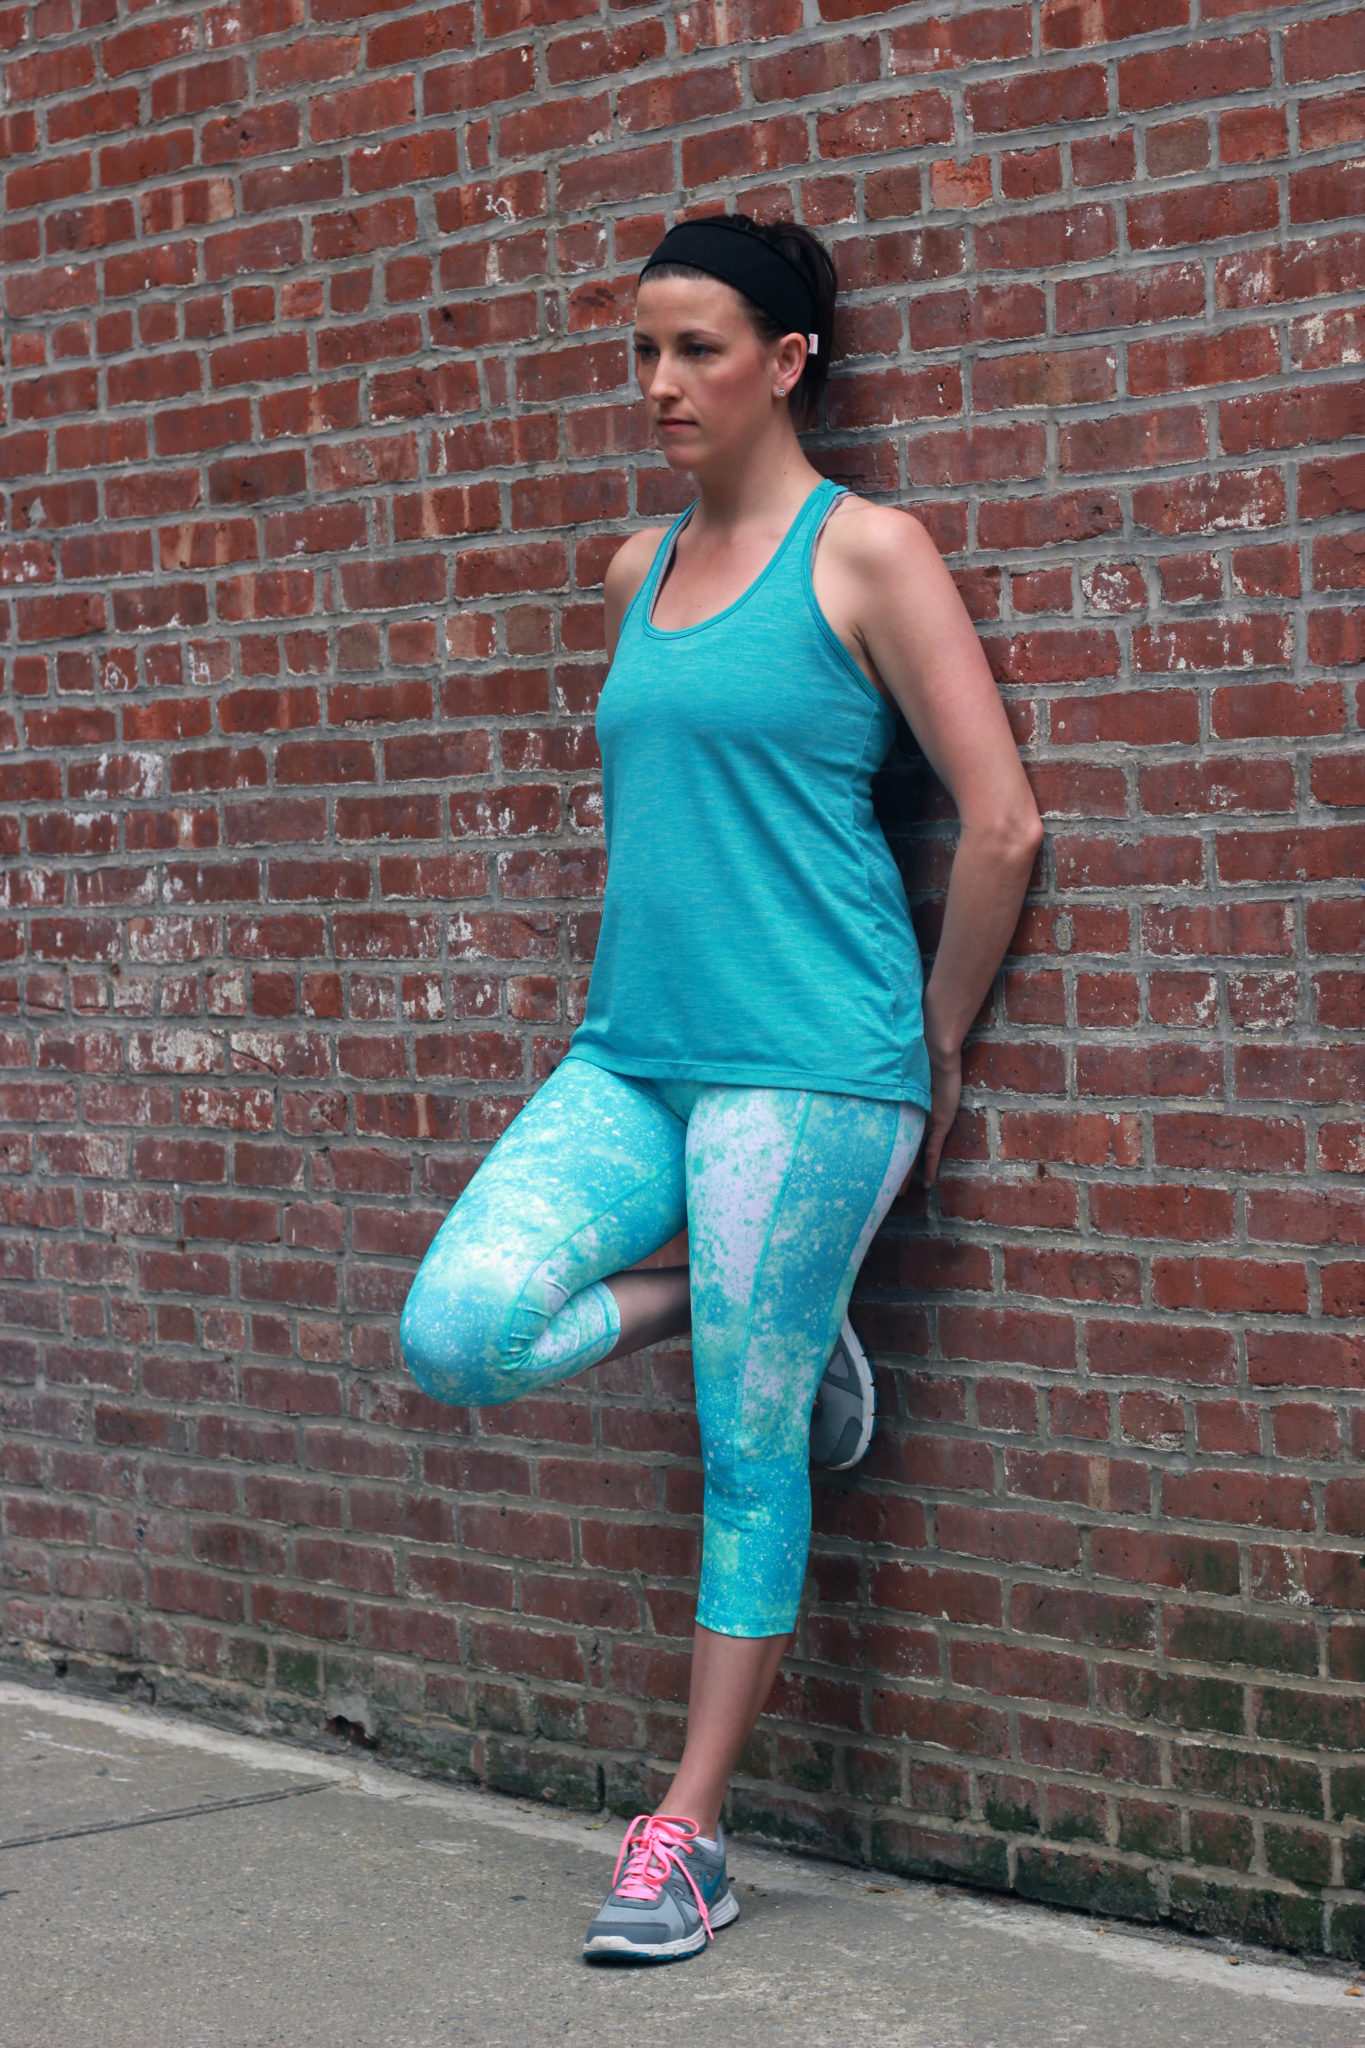 88c4b72ffd5722 Today I wanted to share my new workout gear from Old Navy. If you see a  woman in bright colors, pushing a stroller, running through New York City,  ...